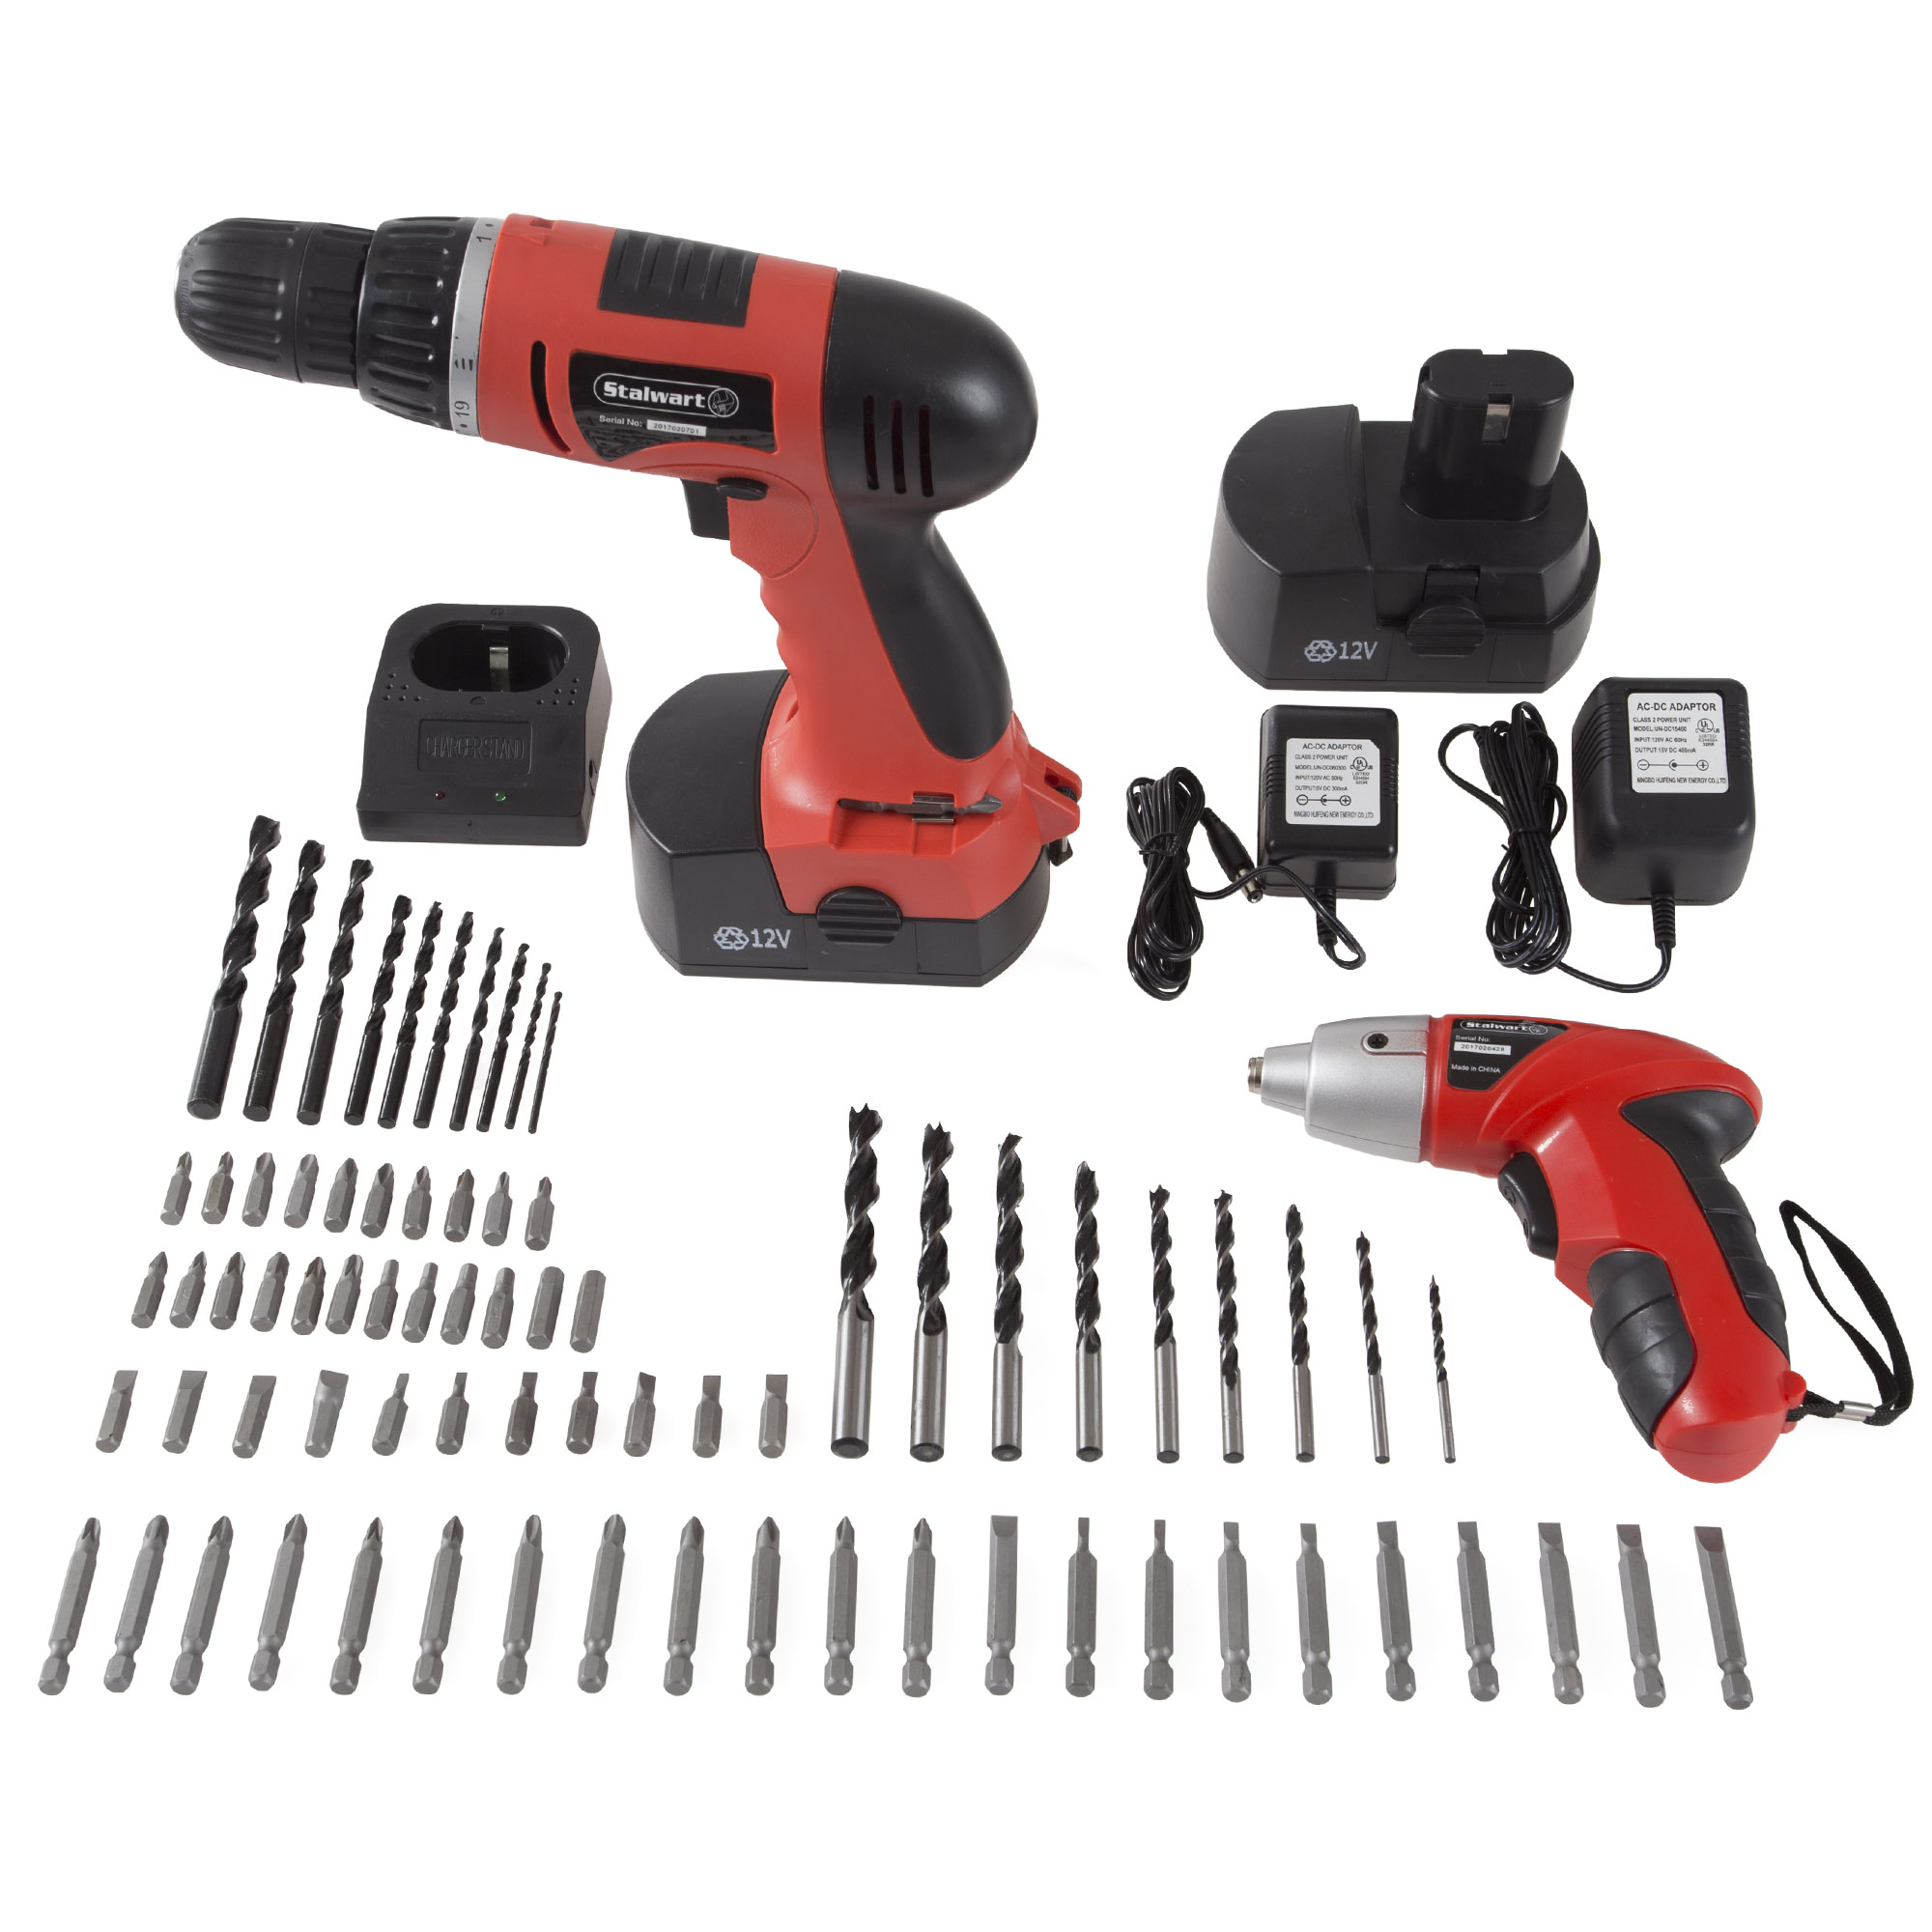 Stalwart W550005 12-Volt Cordless Drill and 3.6-Volt Driver with 74-Piece Project Kit